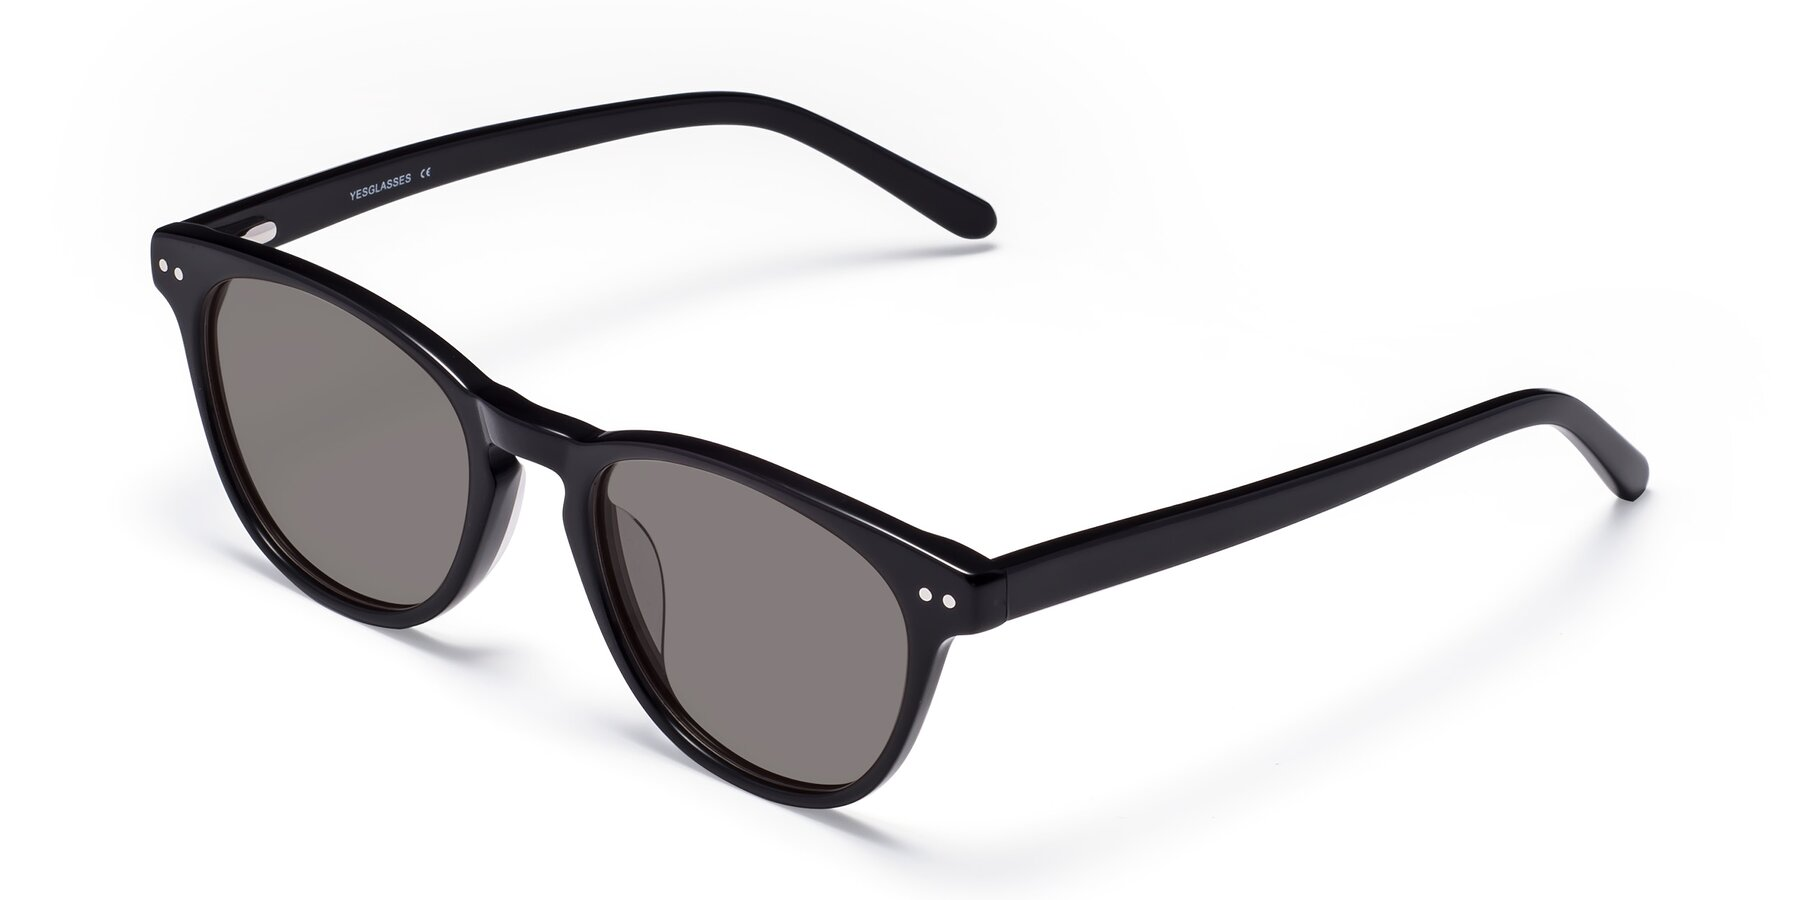 Angle of Blaze in Black with Medium Gray Tinted Lenses